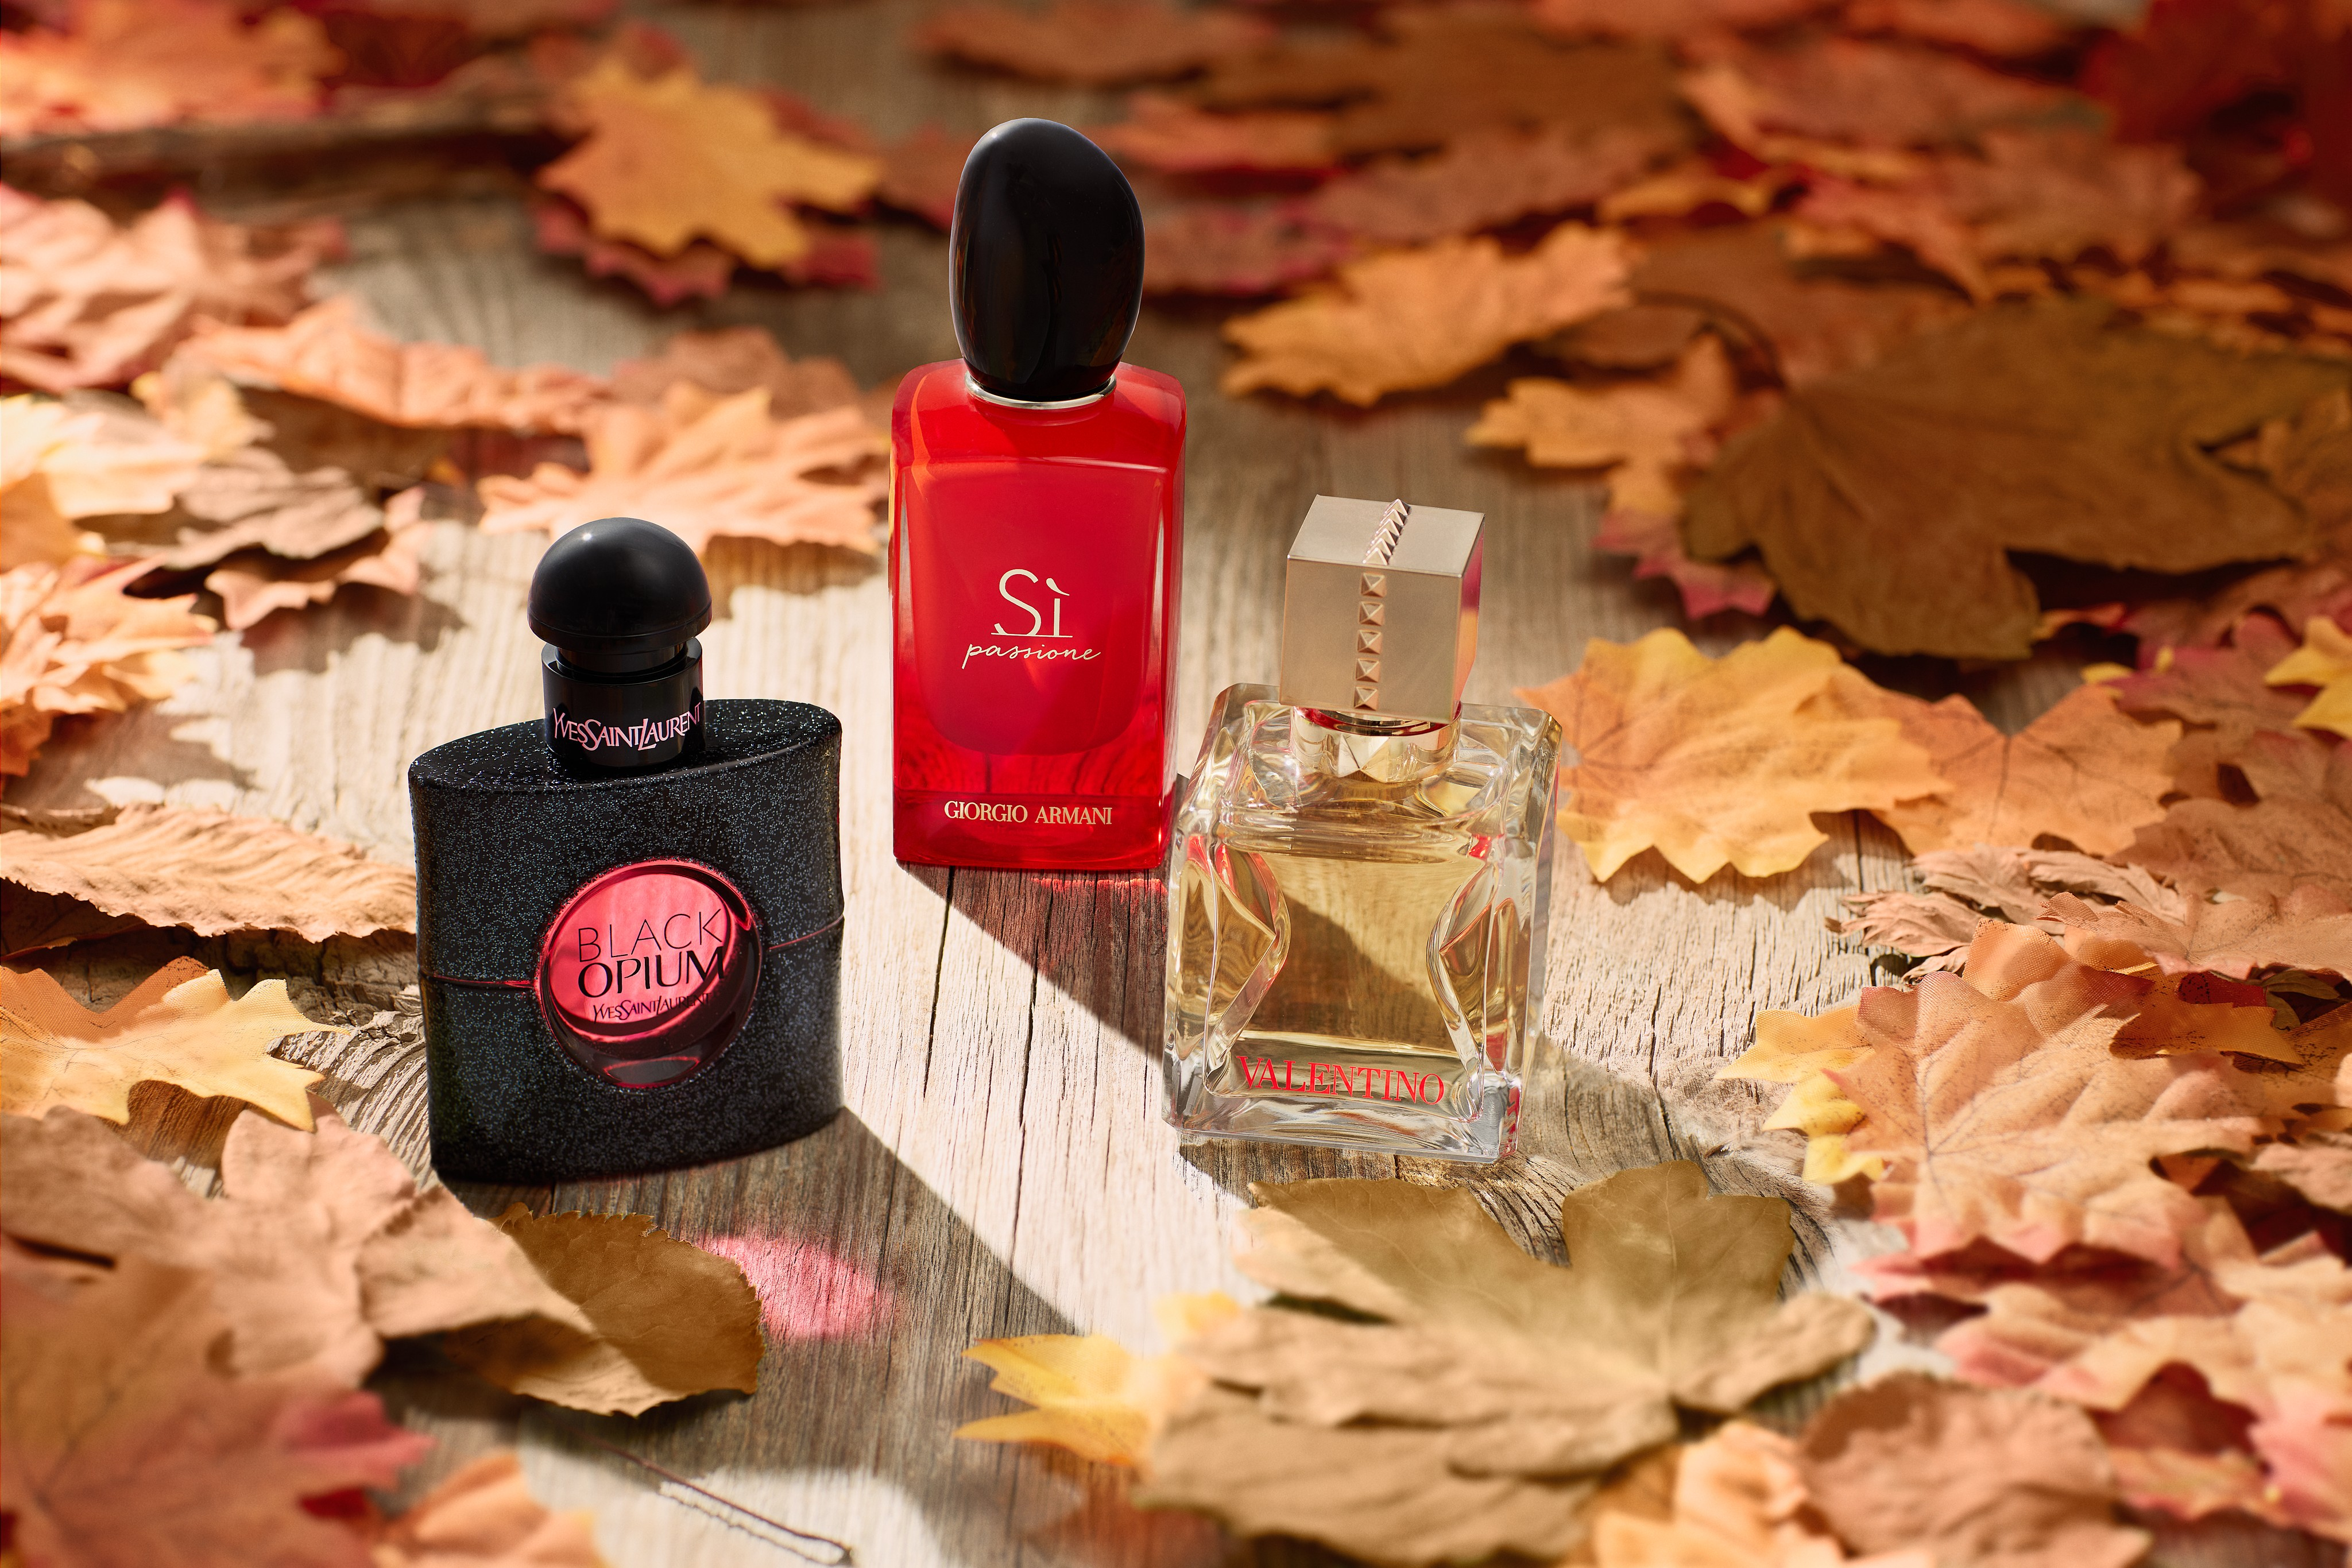 Fragrance-product-female-fragrance-armani-valentino-ysl-autumn-leaves-unlimited-Web-Rendition